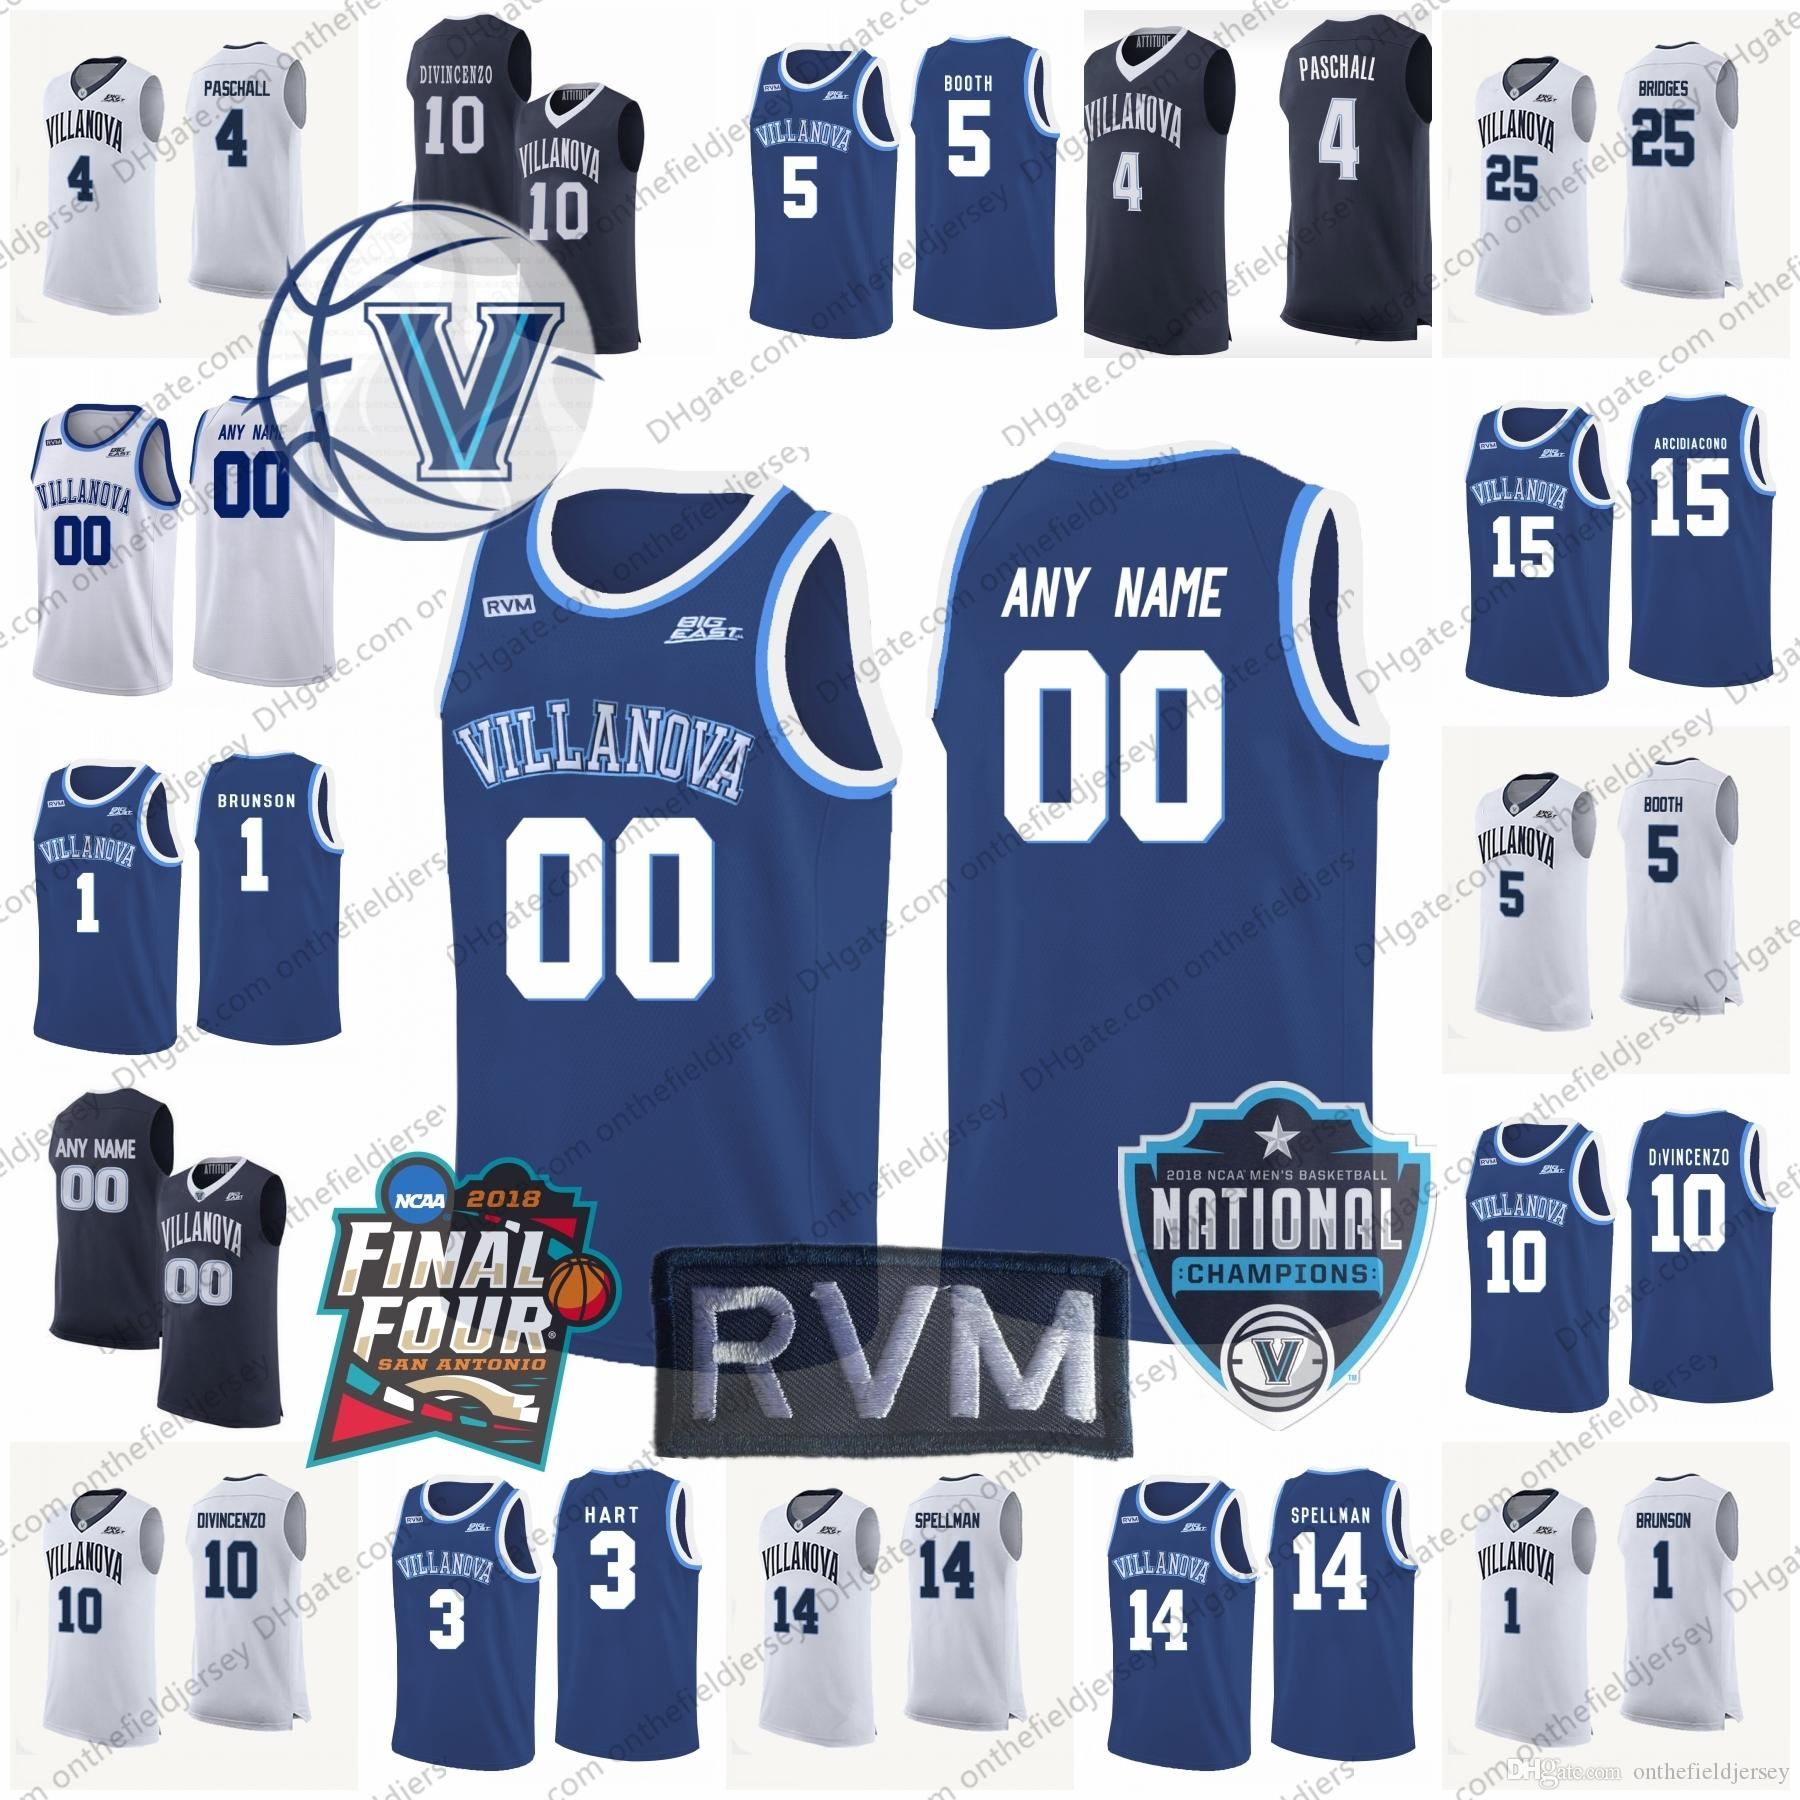 2019 Custom Villanova Wildcats Basketball Jerseys Any Name Number 2018  Final Four   Champions Patch  10 Donte DiVincenzo 1 Jalen Brunson S 3XL From  ... bb9819261